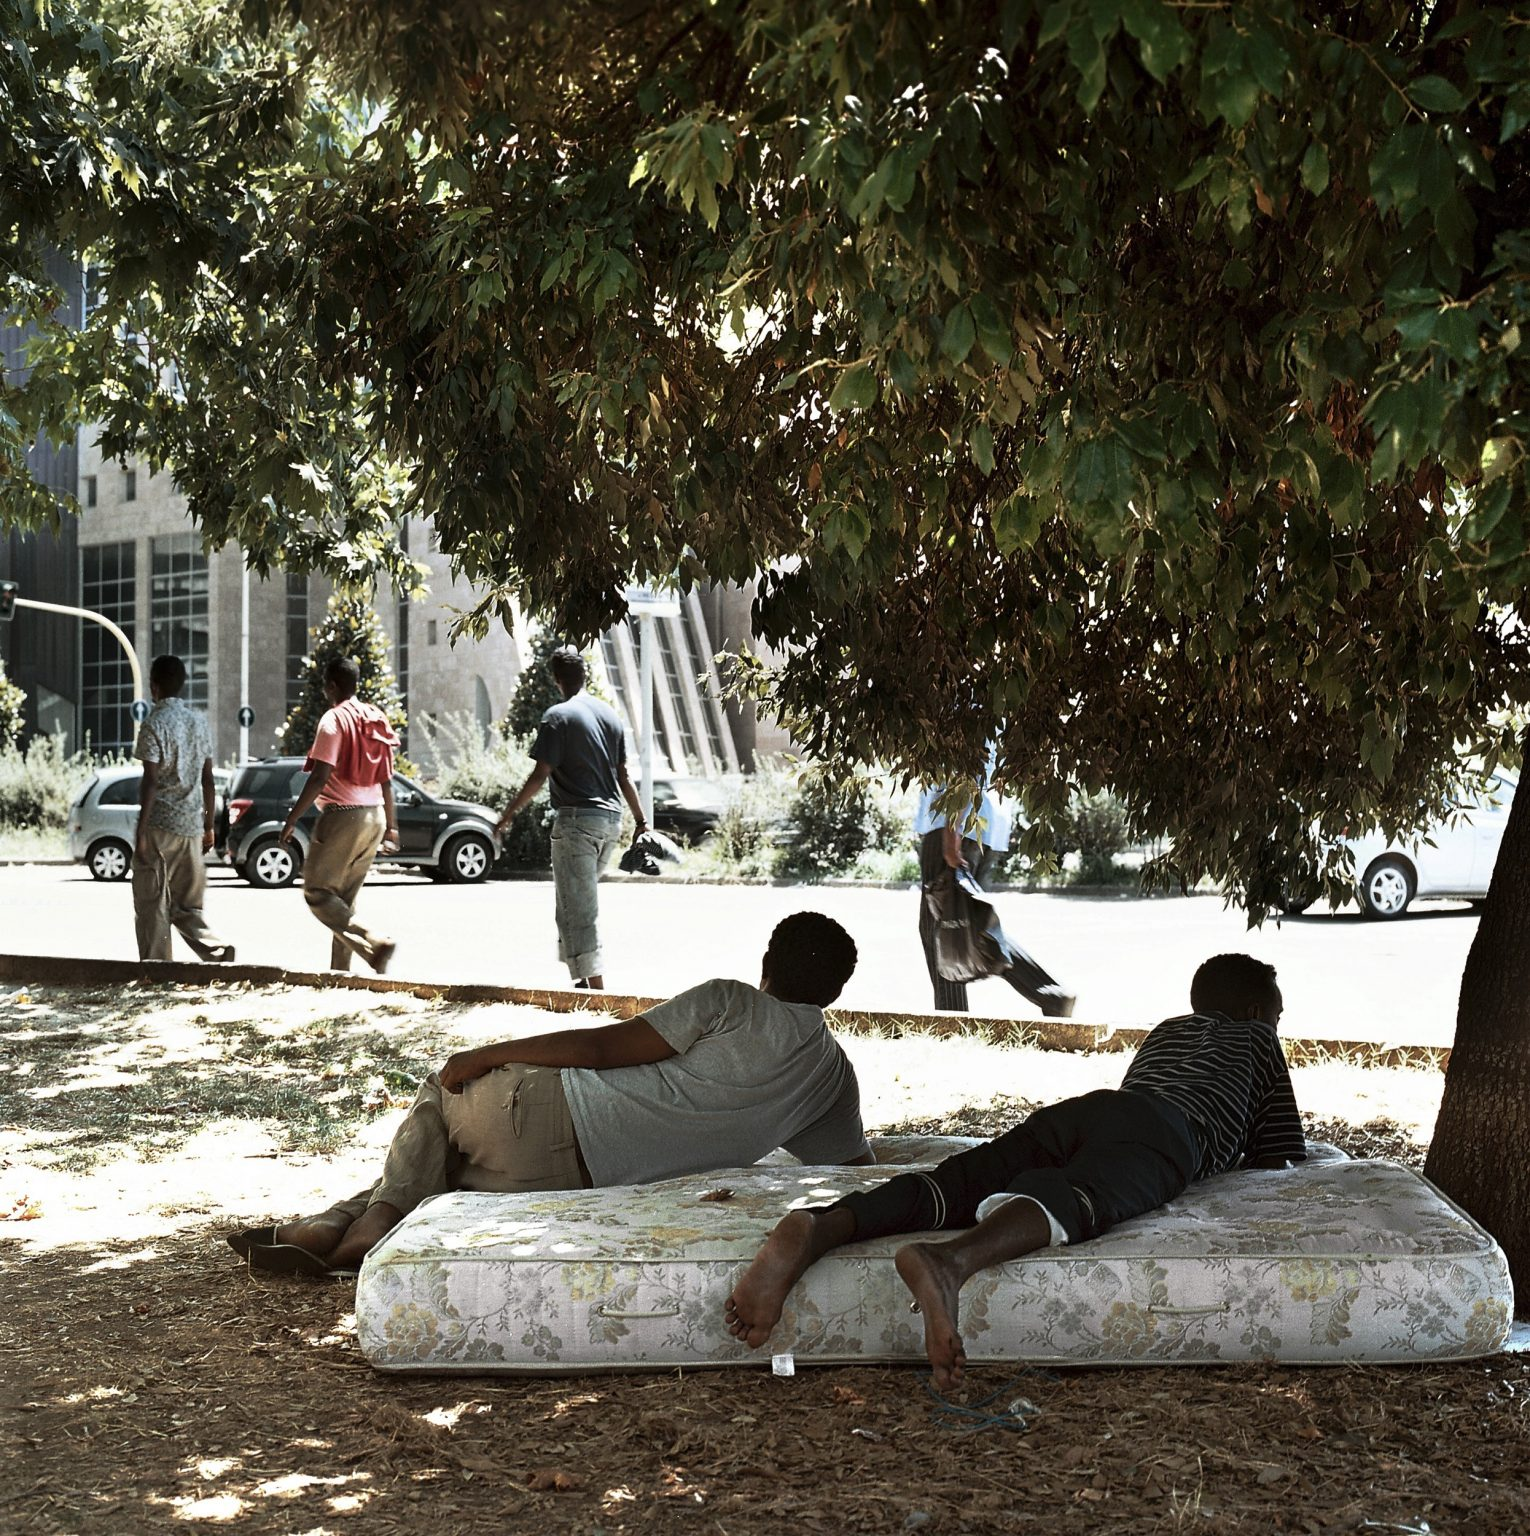 Several immigrants that came from Somalia asking for political asylum in Italy are seen in a central area in the city of Florence.